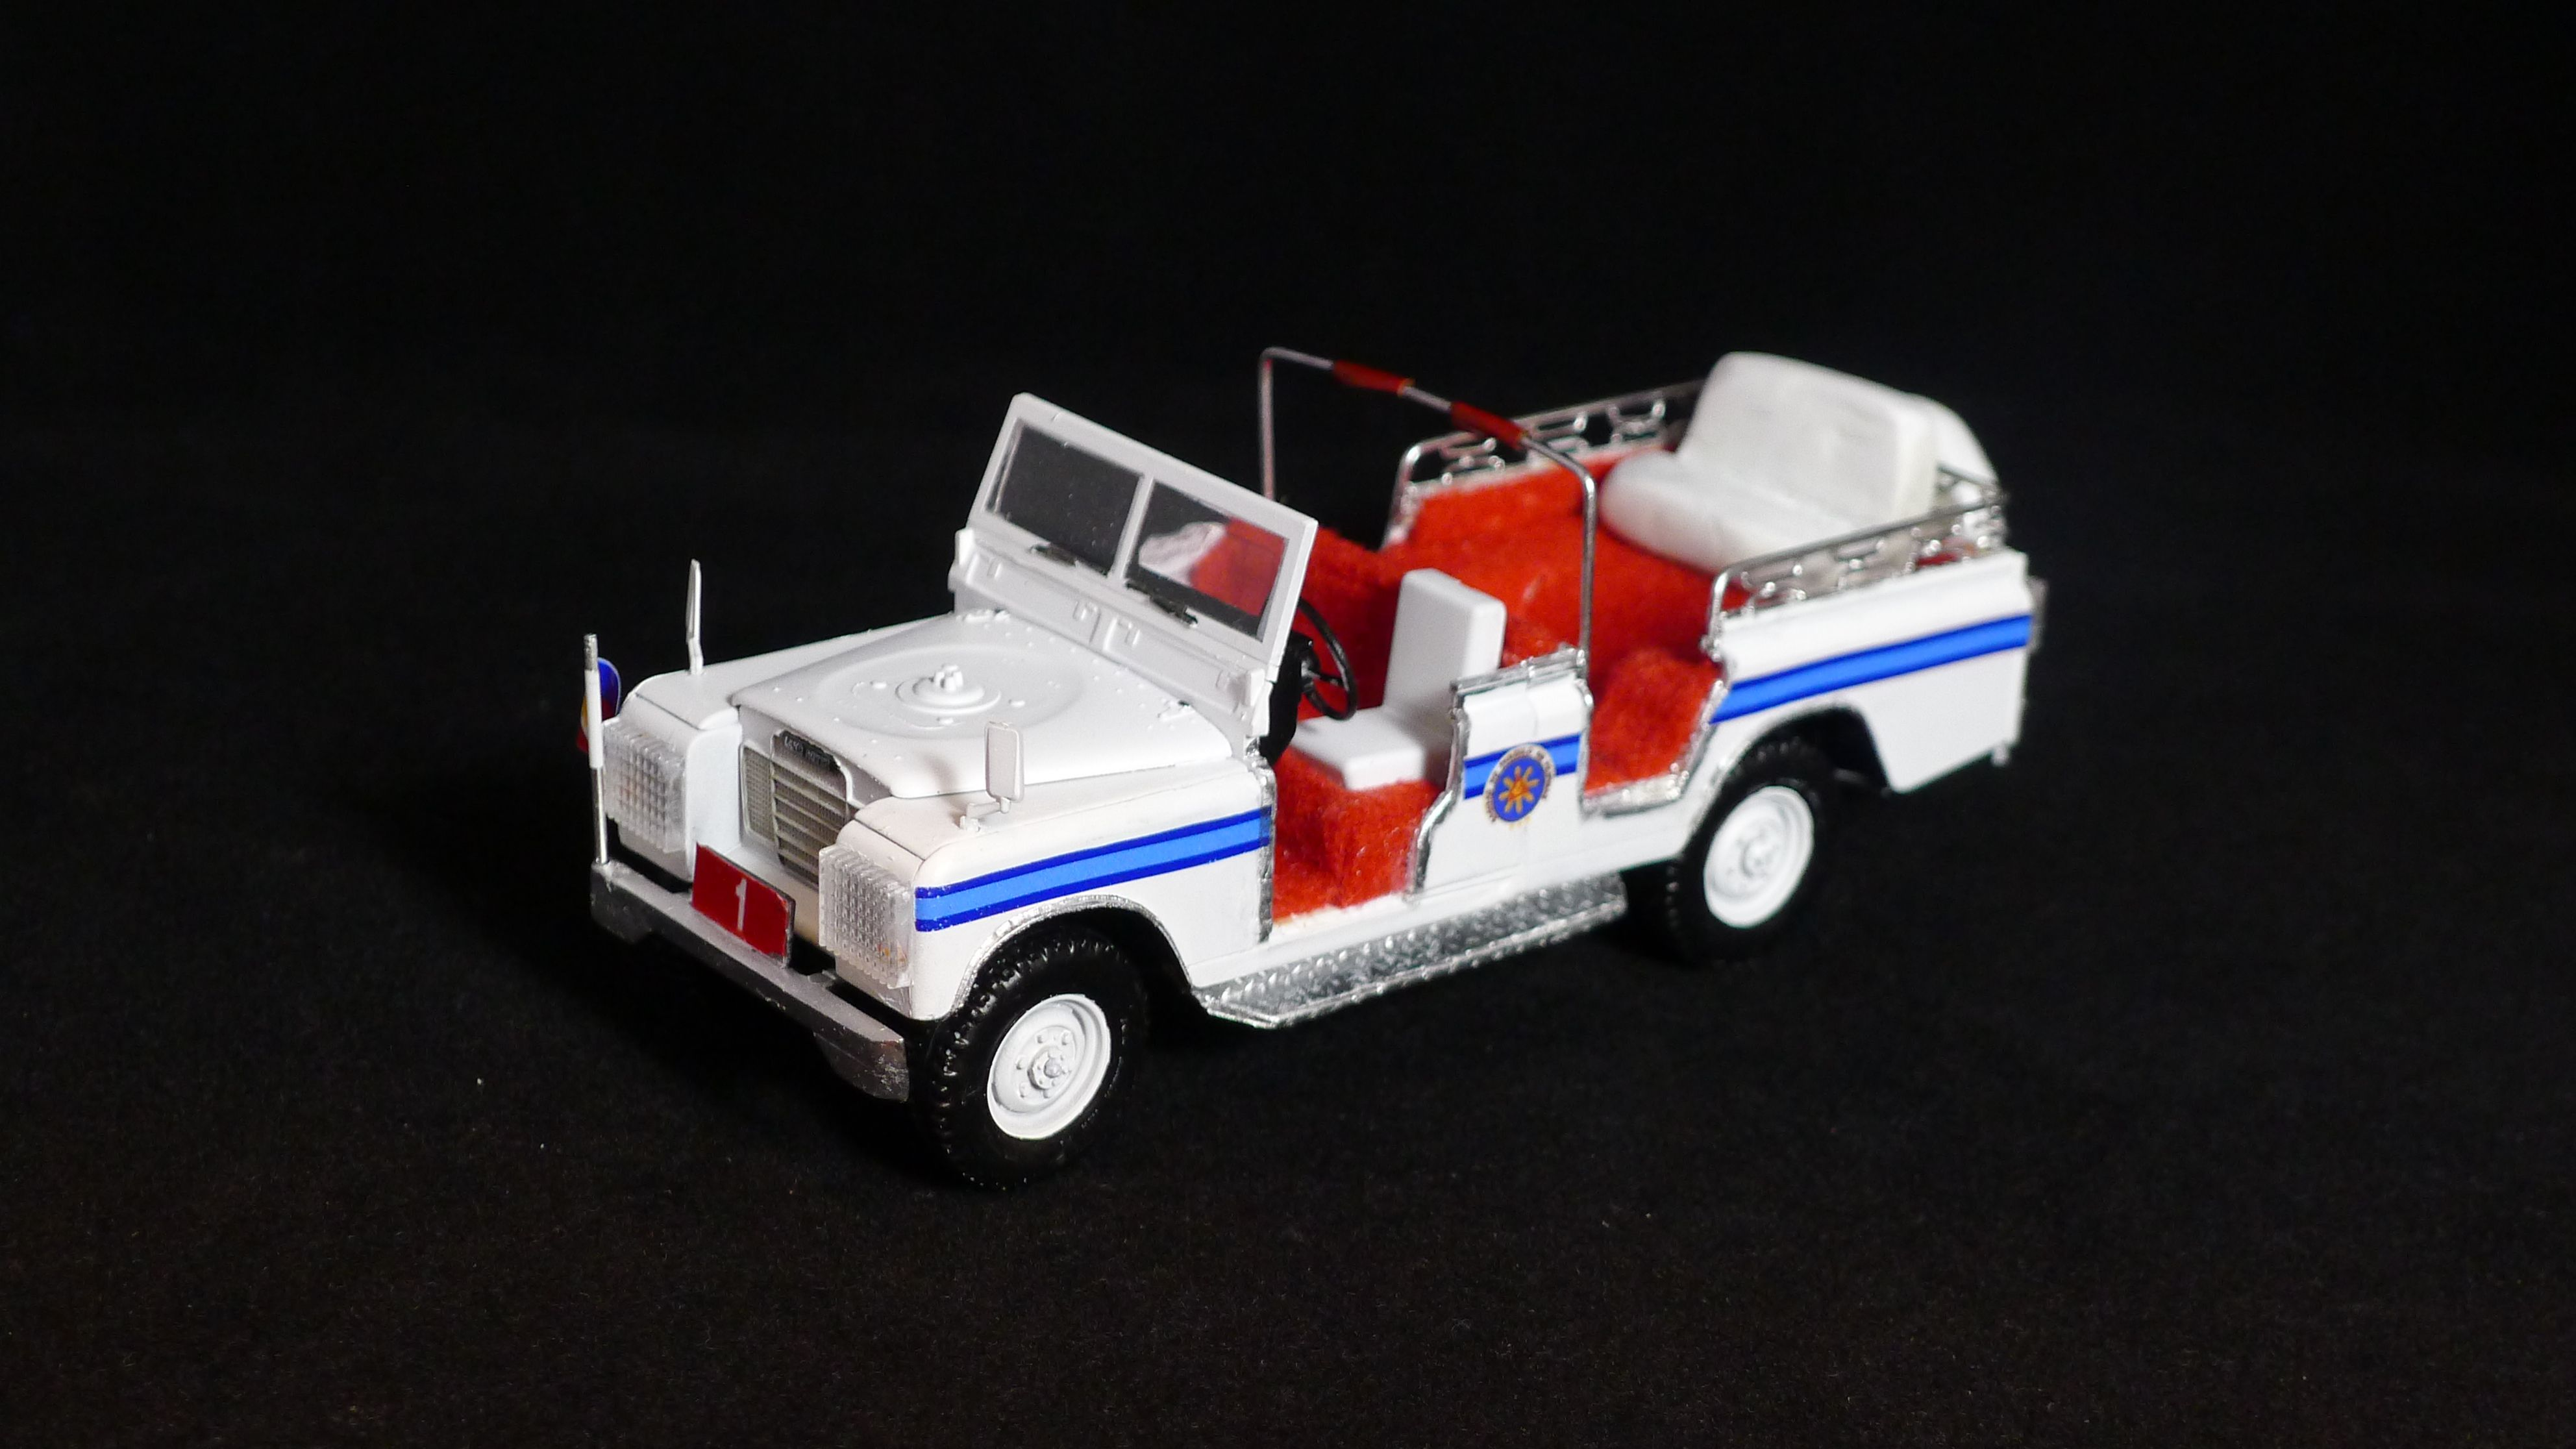 1/35 scale Italeri kit, Presidential Security Group's White Carabao ceremonial vehicle